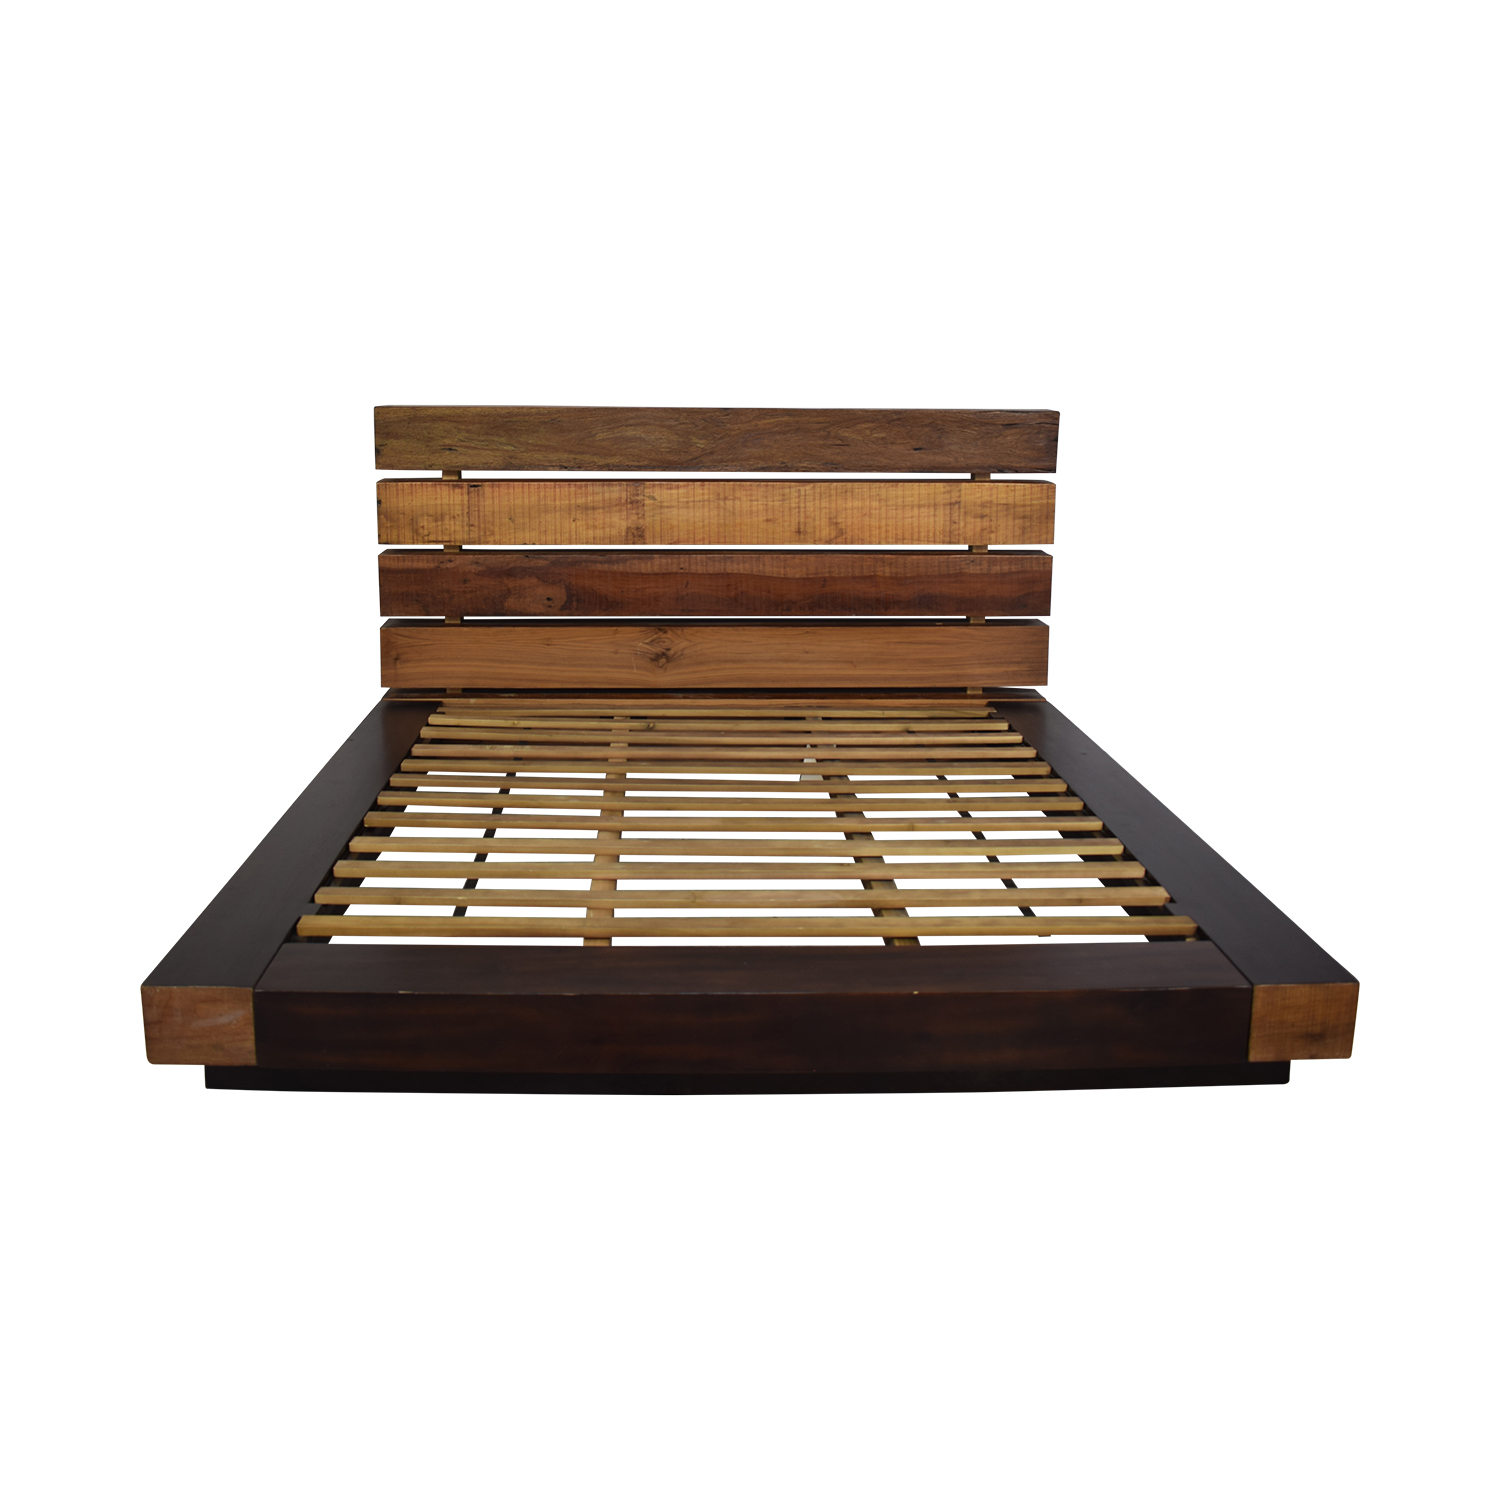 buy ABC Carpet & Home ABC Carpet &  Home King Size Edge Rustic Slat Bed online